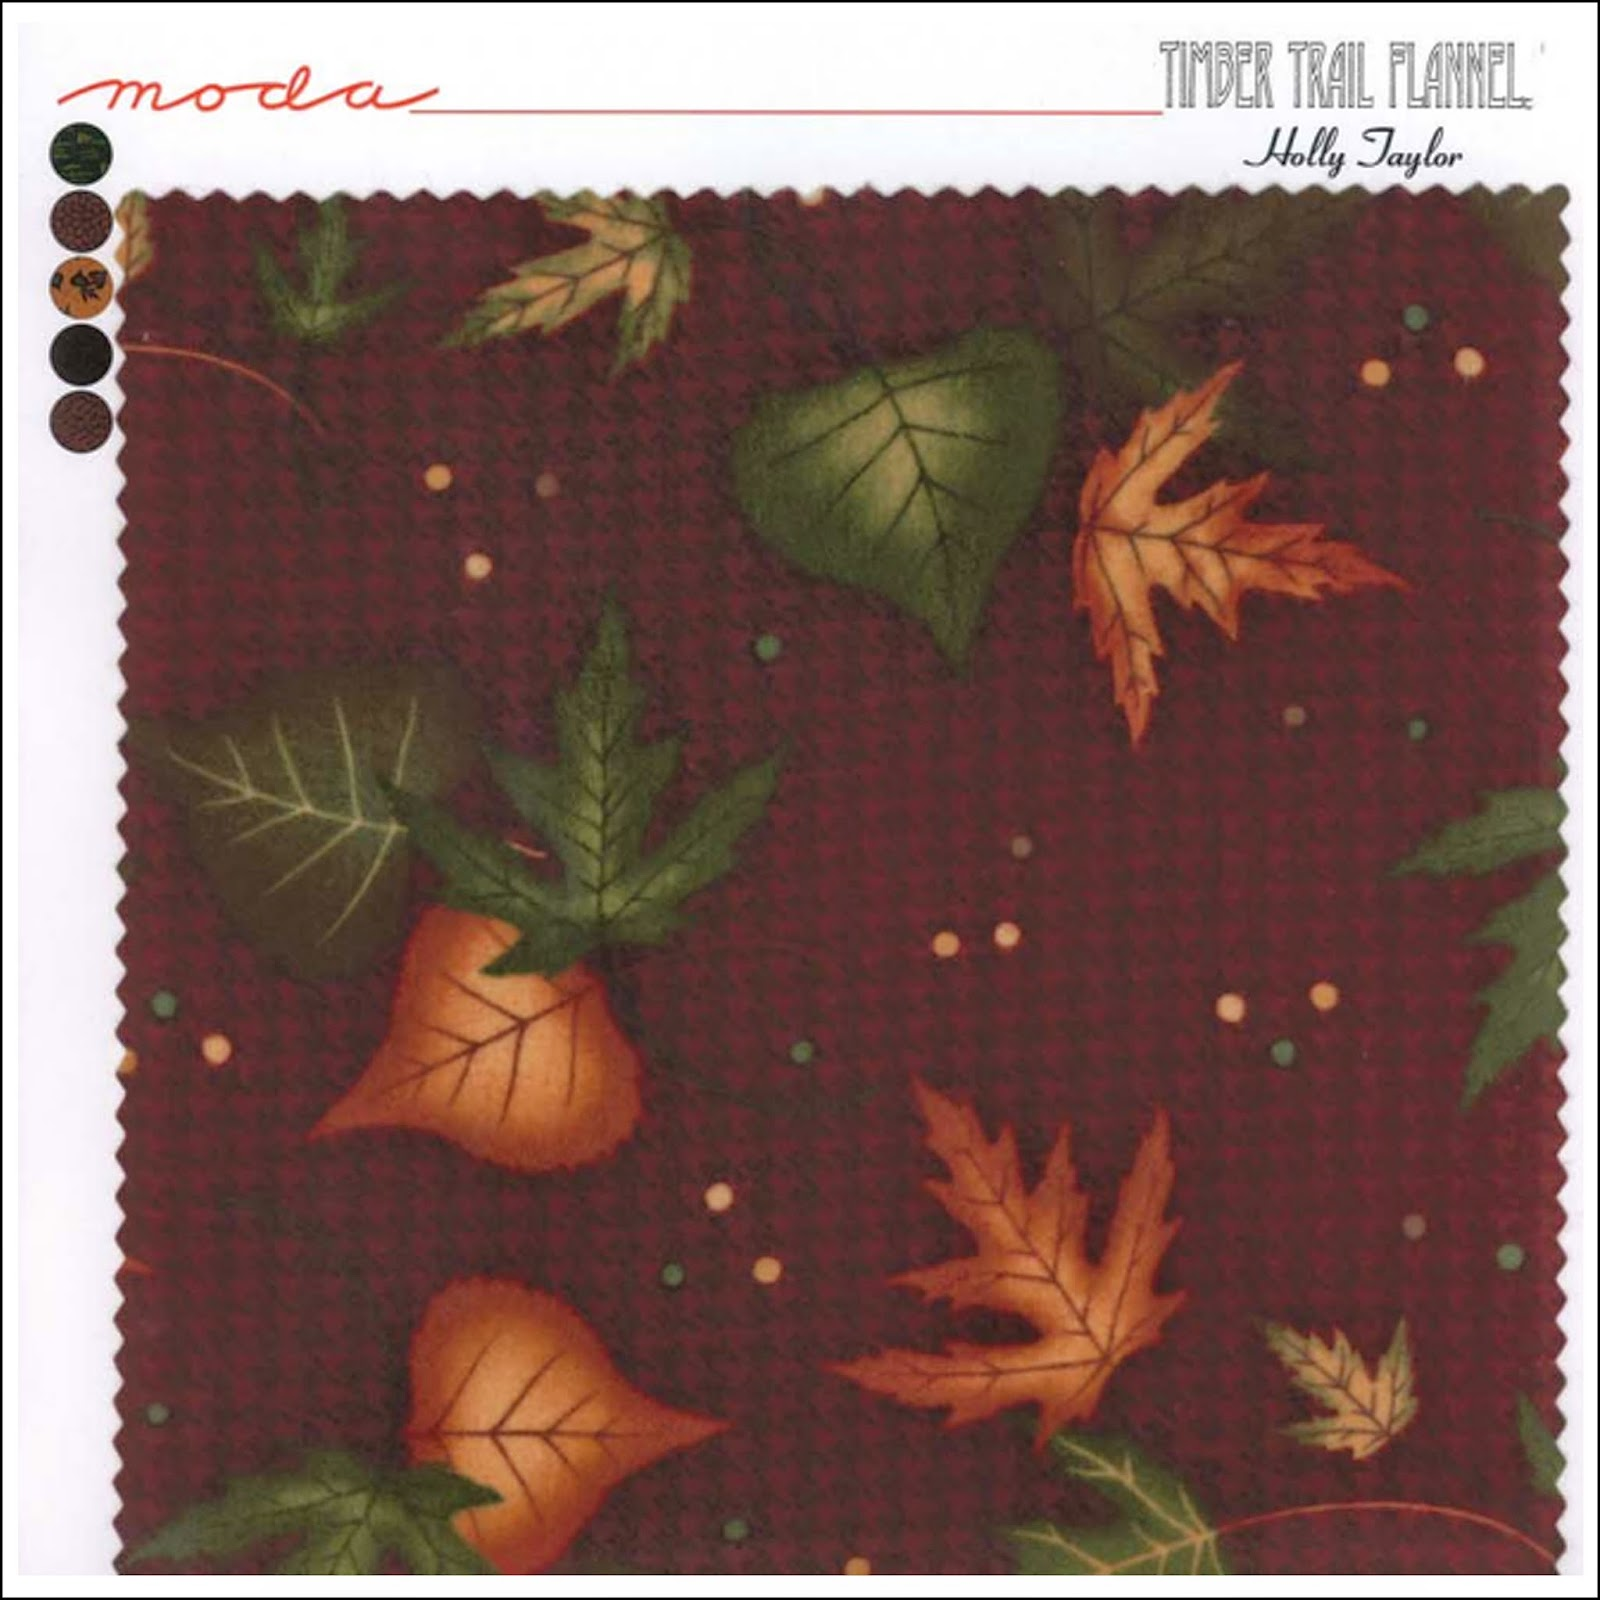 Moda TIMBER TRAIL FLANNELS Quilt Fabric by Holly Taylor for Moda Fabrics